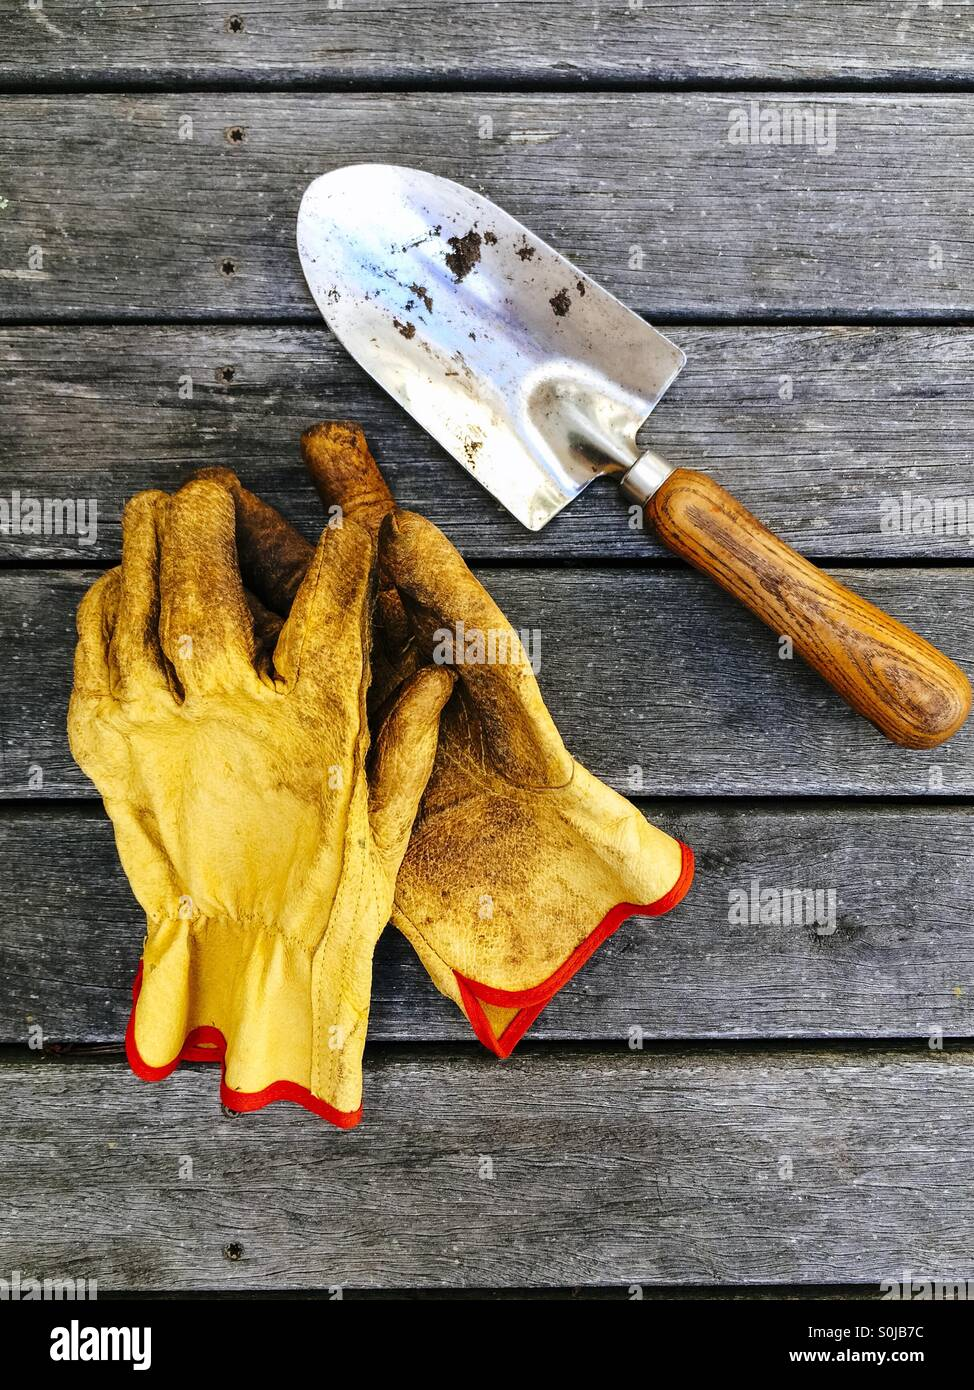 Gardening gloves and hand trowel on wooden deck - Stock Image